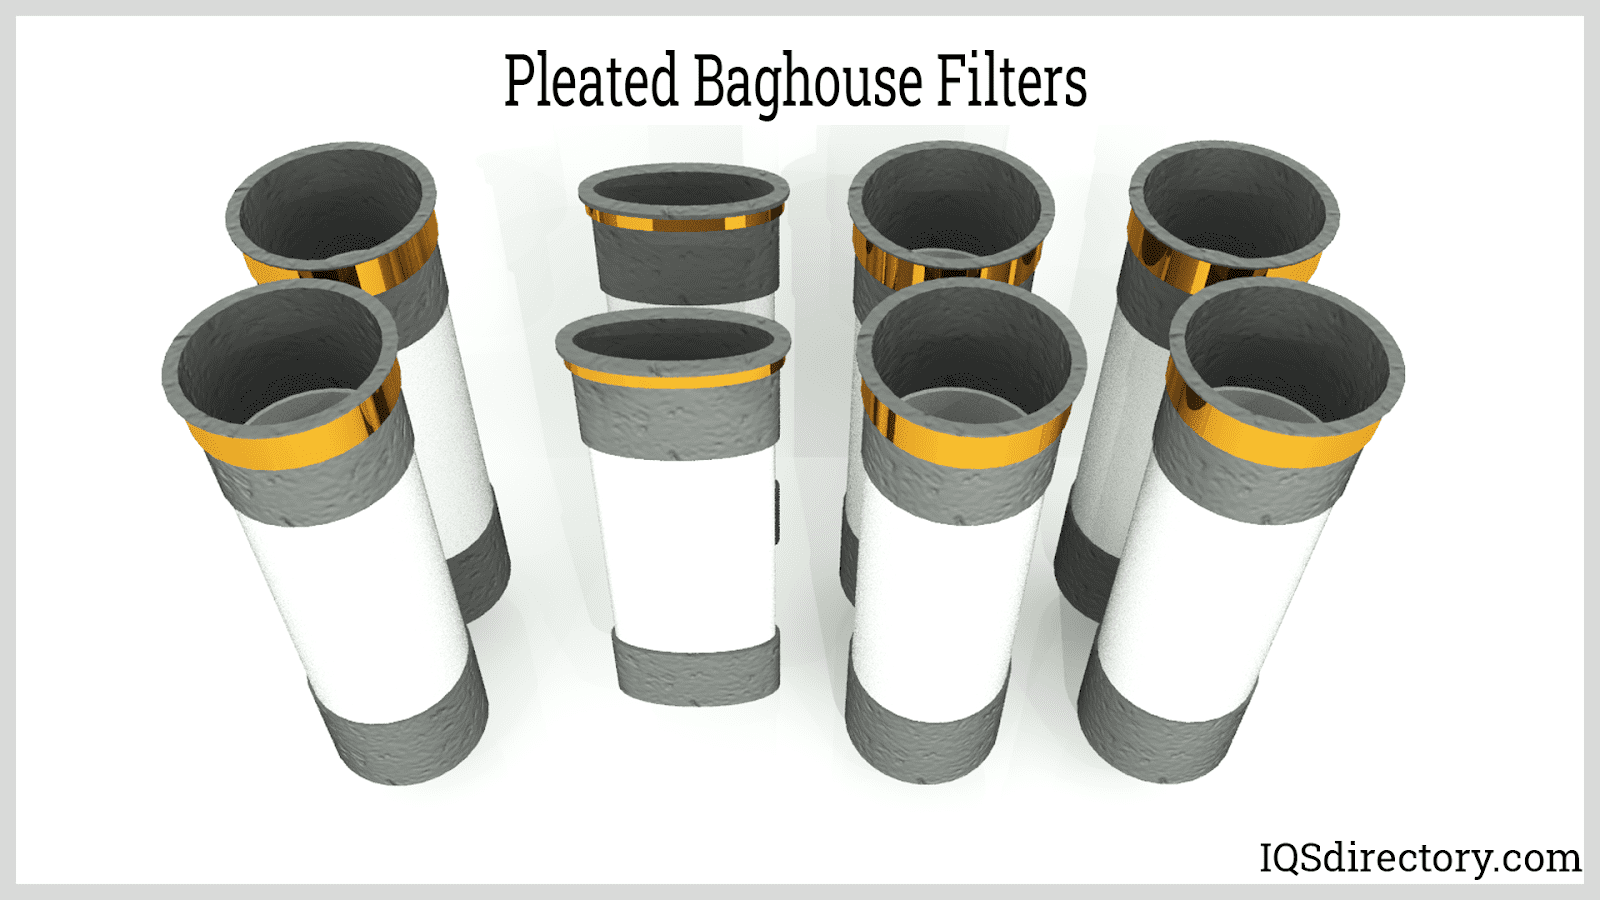 Pleated Baghouse Filters